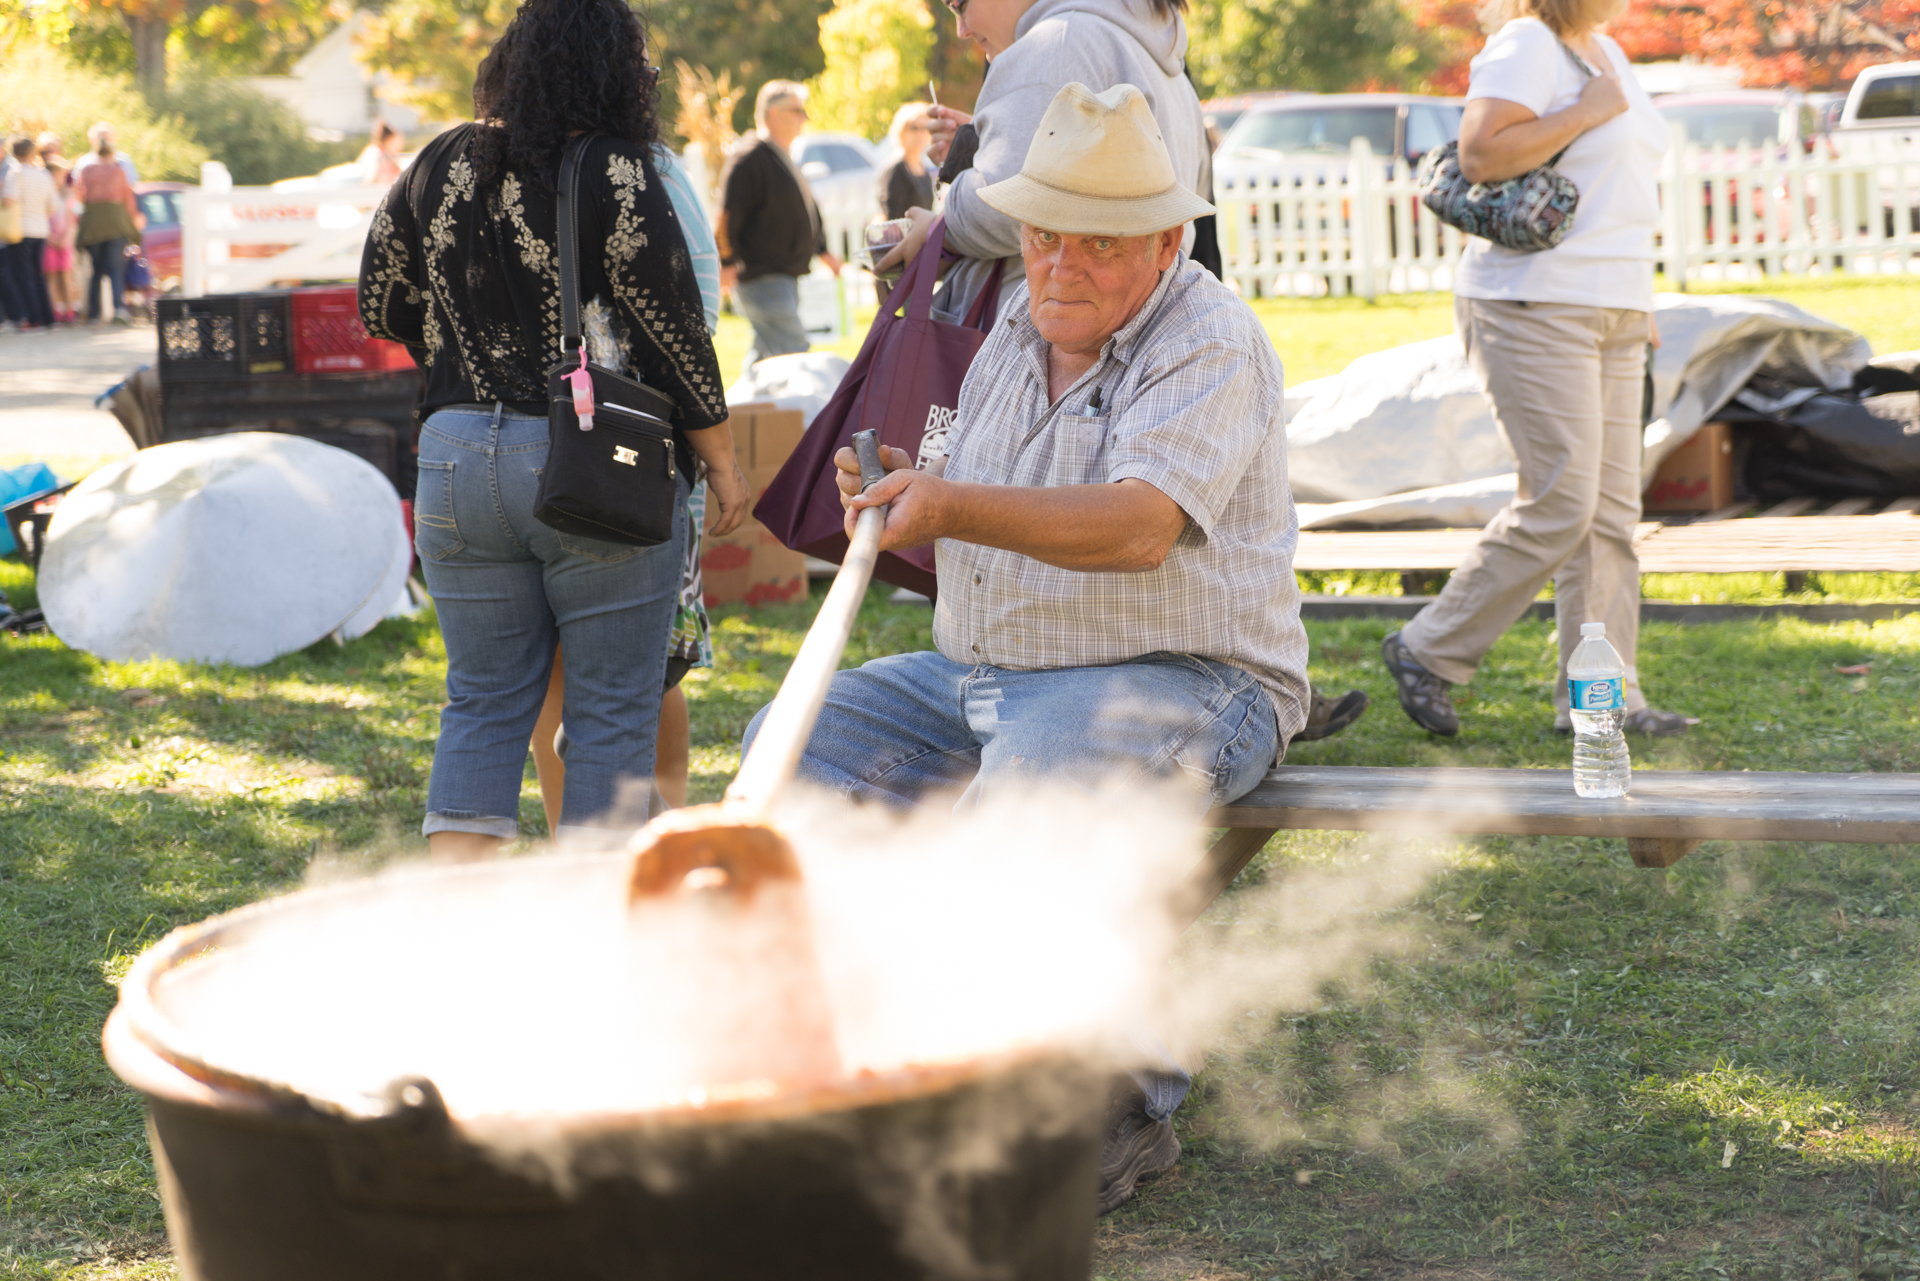 Man churning the apple butter (Cleveland, Ohio)